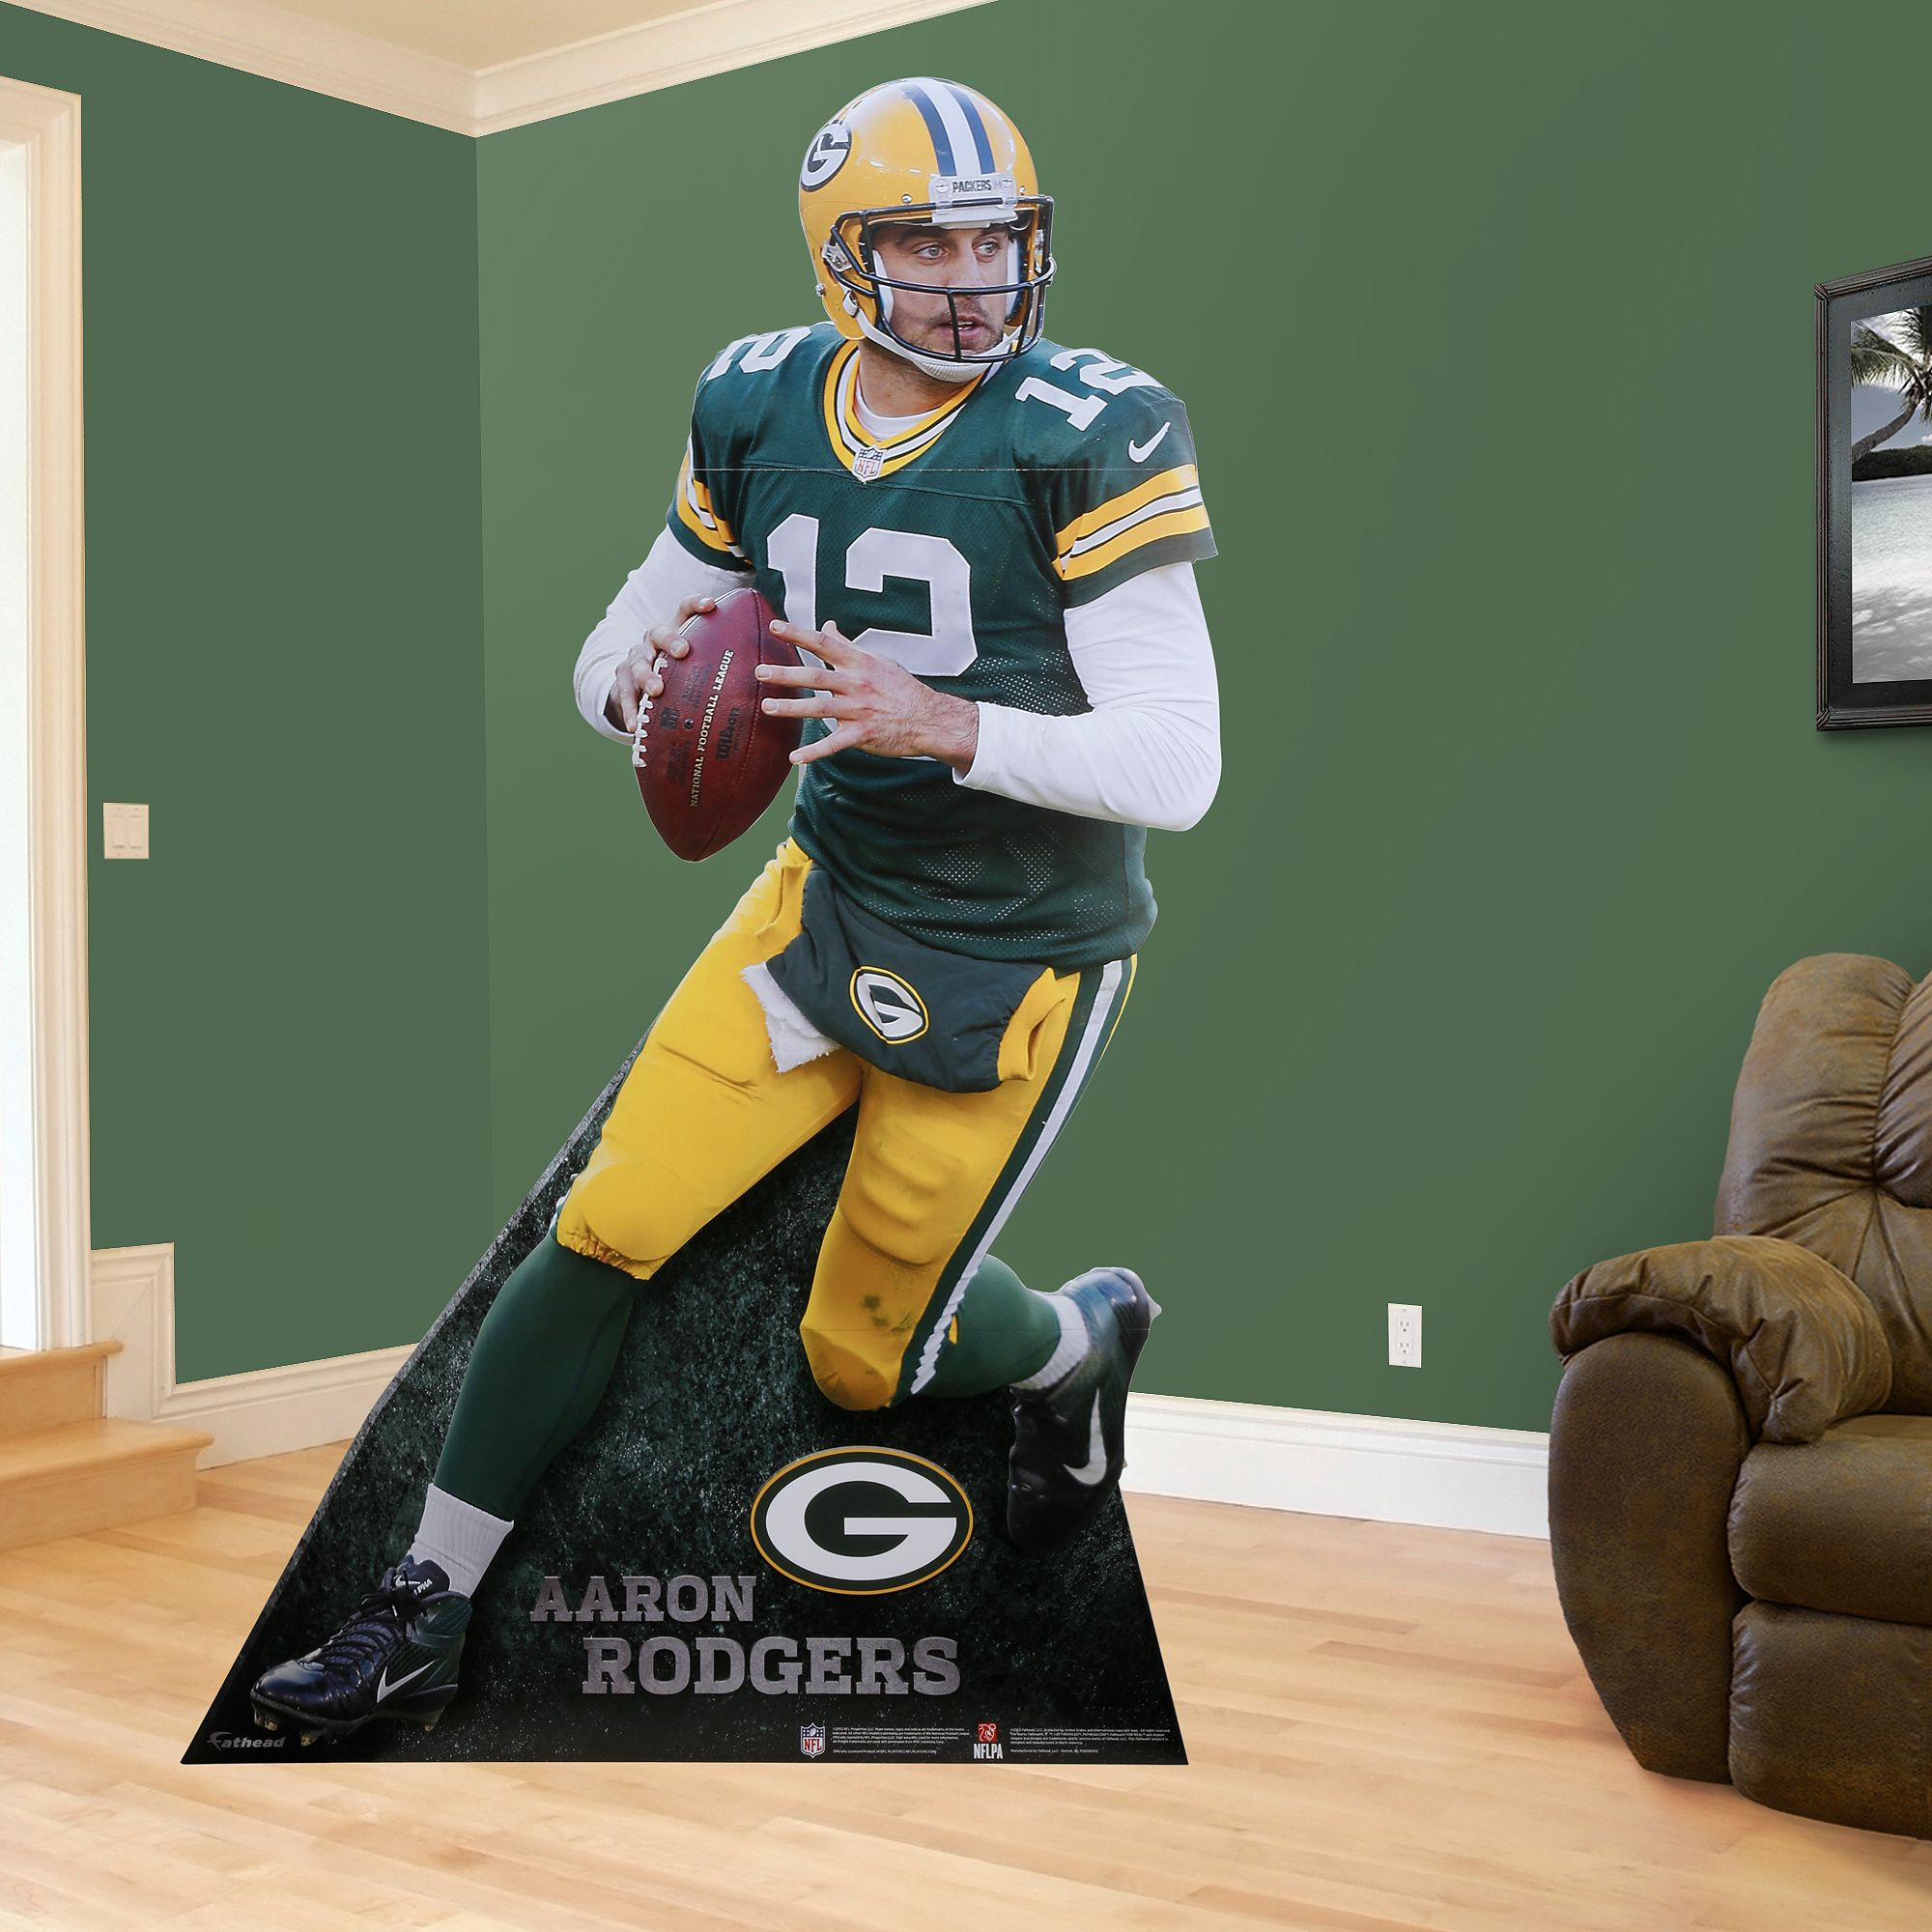 Aaron Rodgers Stand Out Aaron Rodgers Green Bay Packers Party Life Size